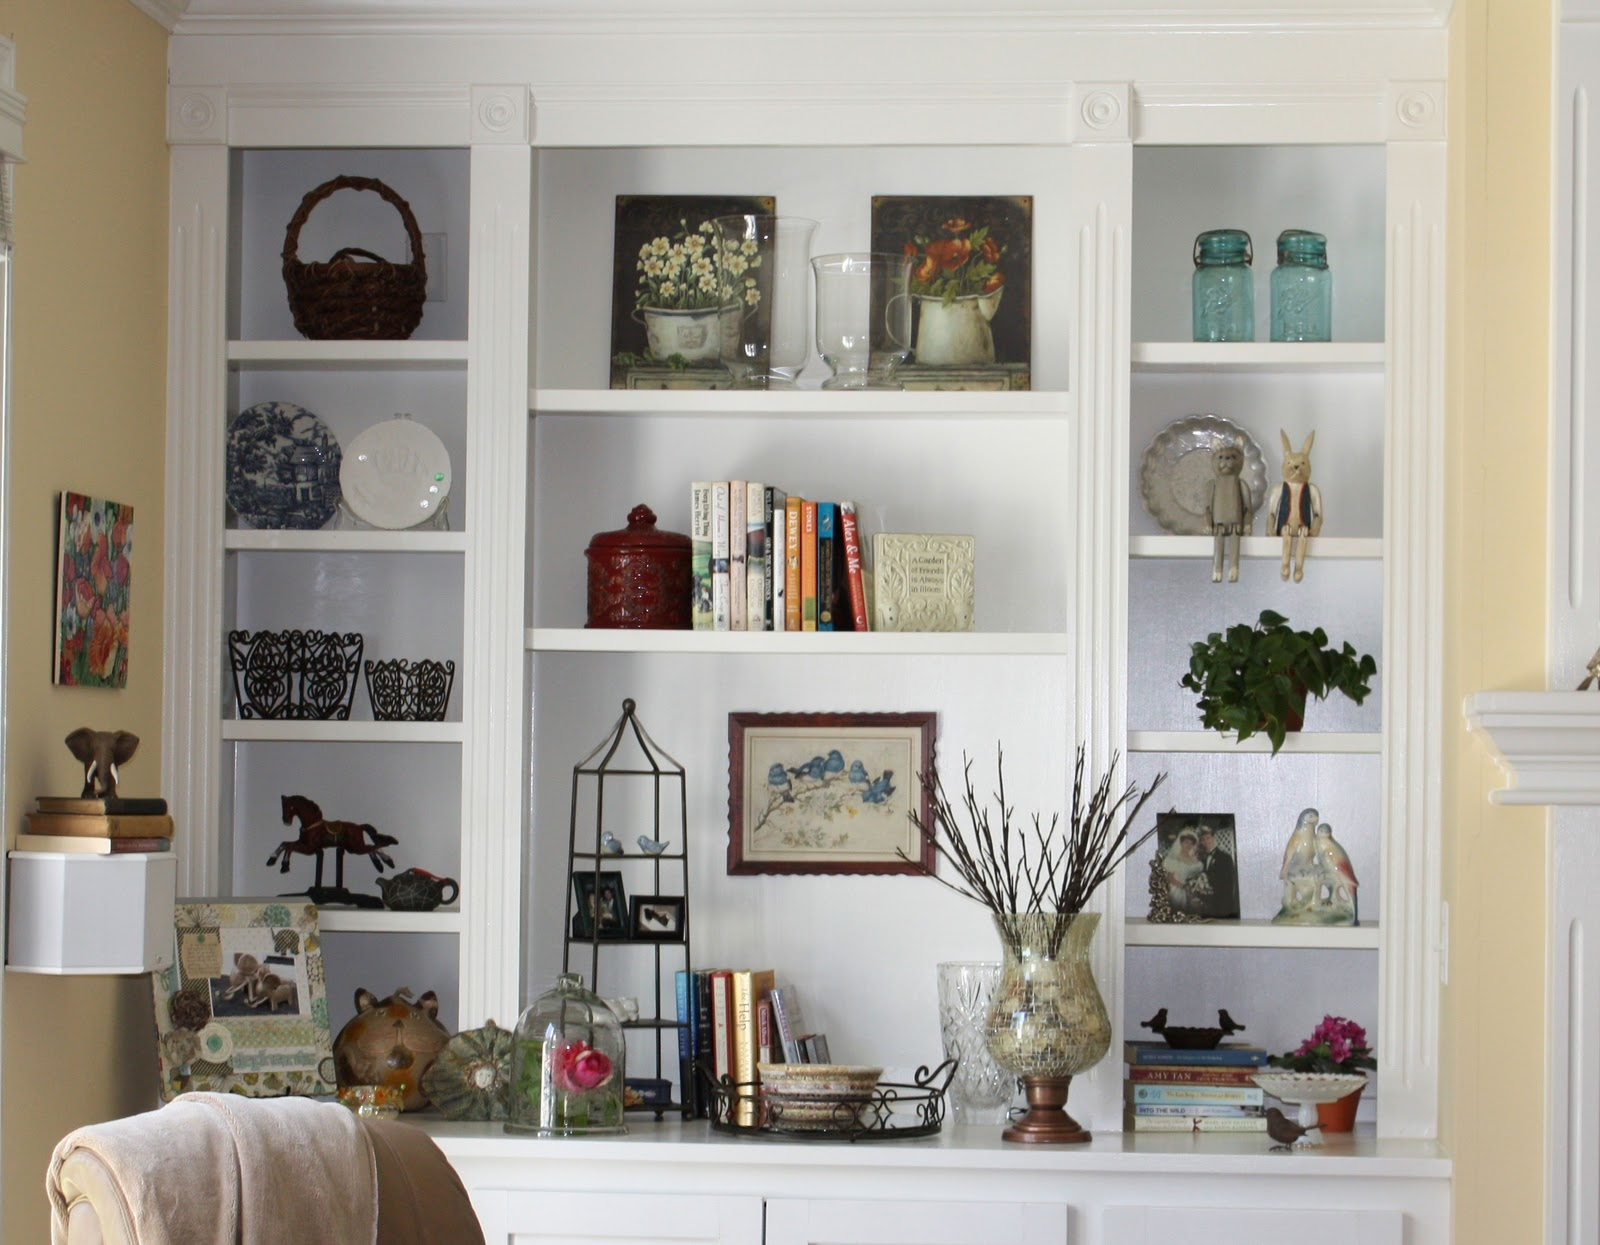 Interior Design Shelves Home Regarding Bookshelves Designs For Home (#13 of 15)